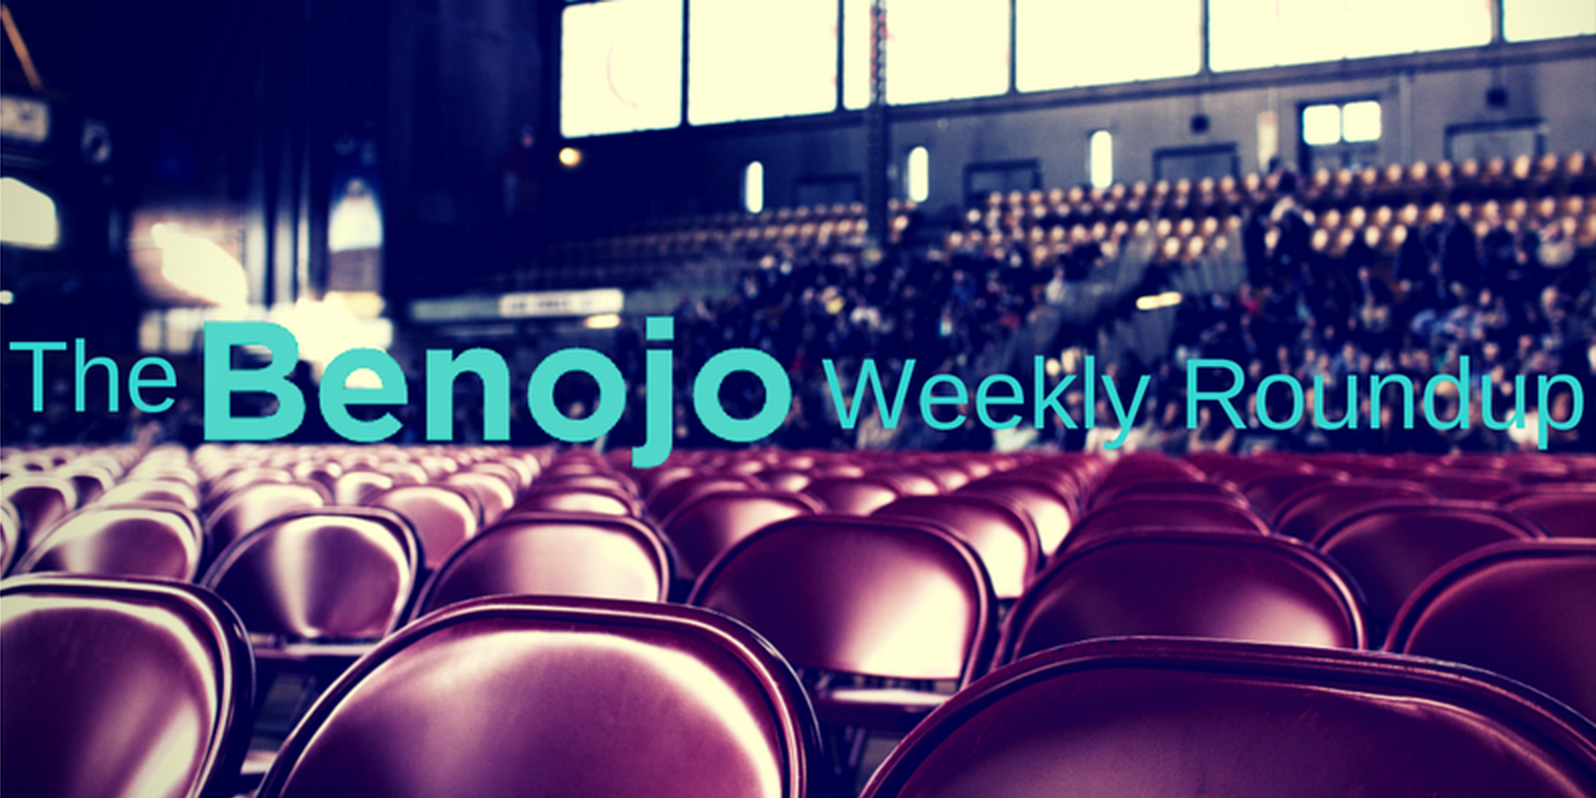 The Benojo weekly roundup